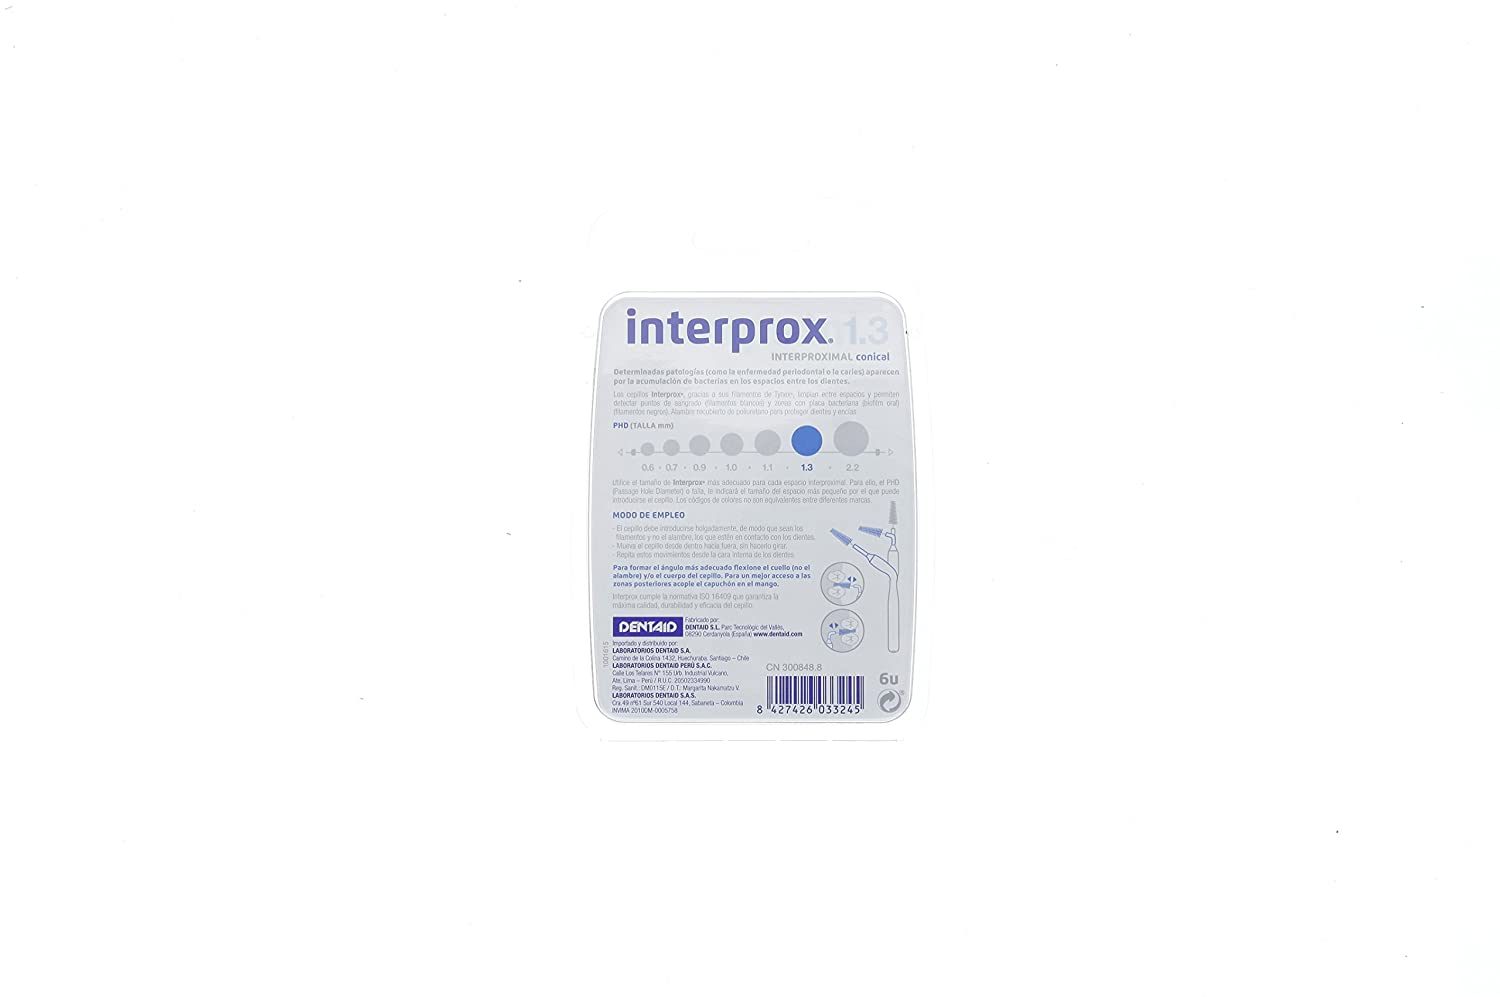 Amazon.com: Dentaid Toothbrush Interprox Interproximal Conico 6 U by Dentaid: Health & Personal Care